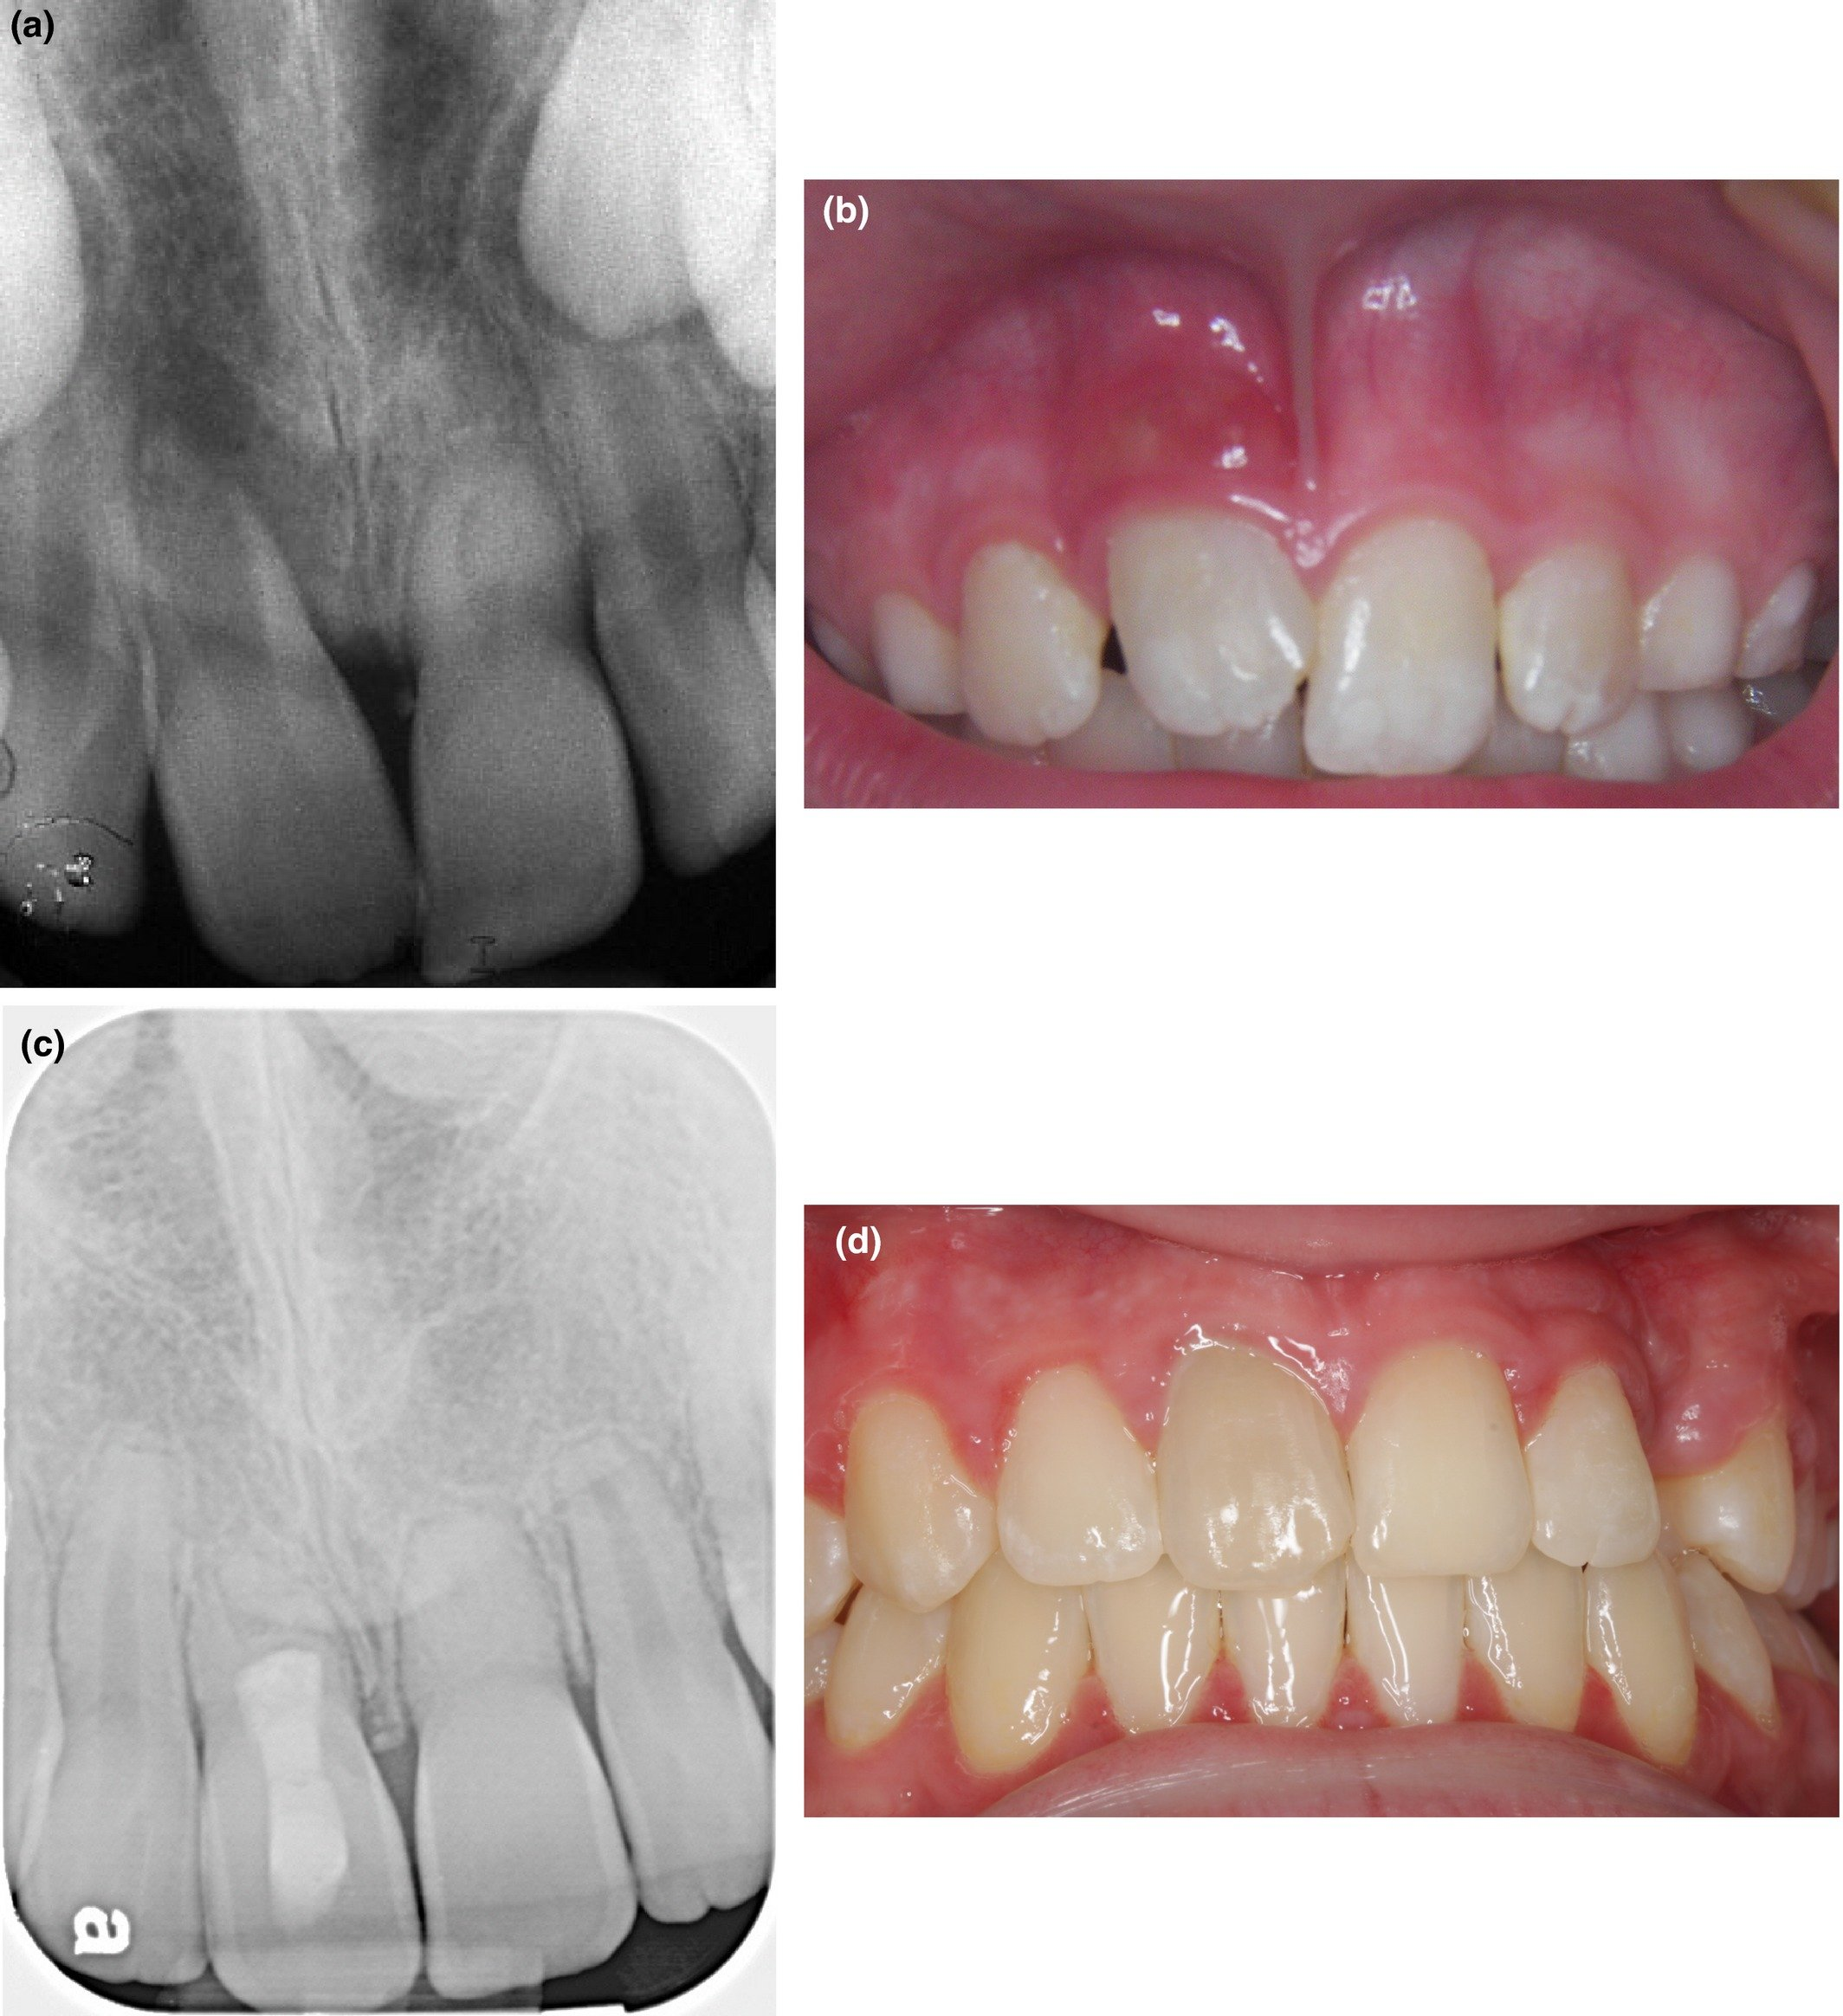 Overcoming The Remaining Tooth Roots Left In The Gums And Depressed Other Teeth?